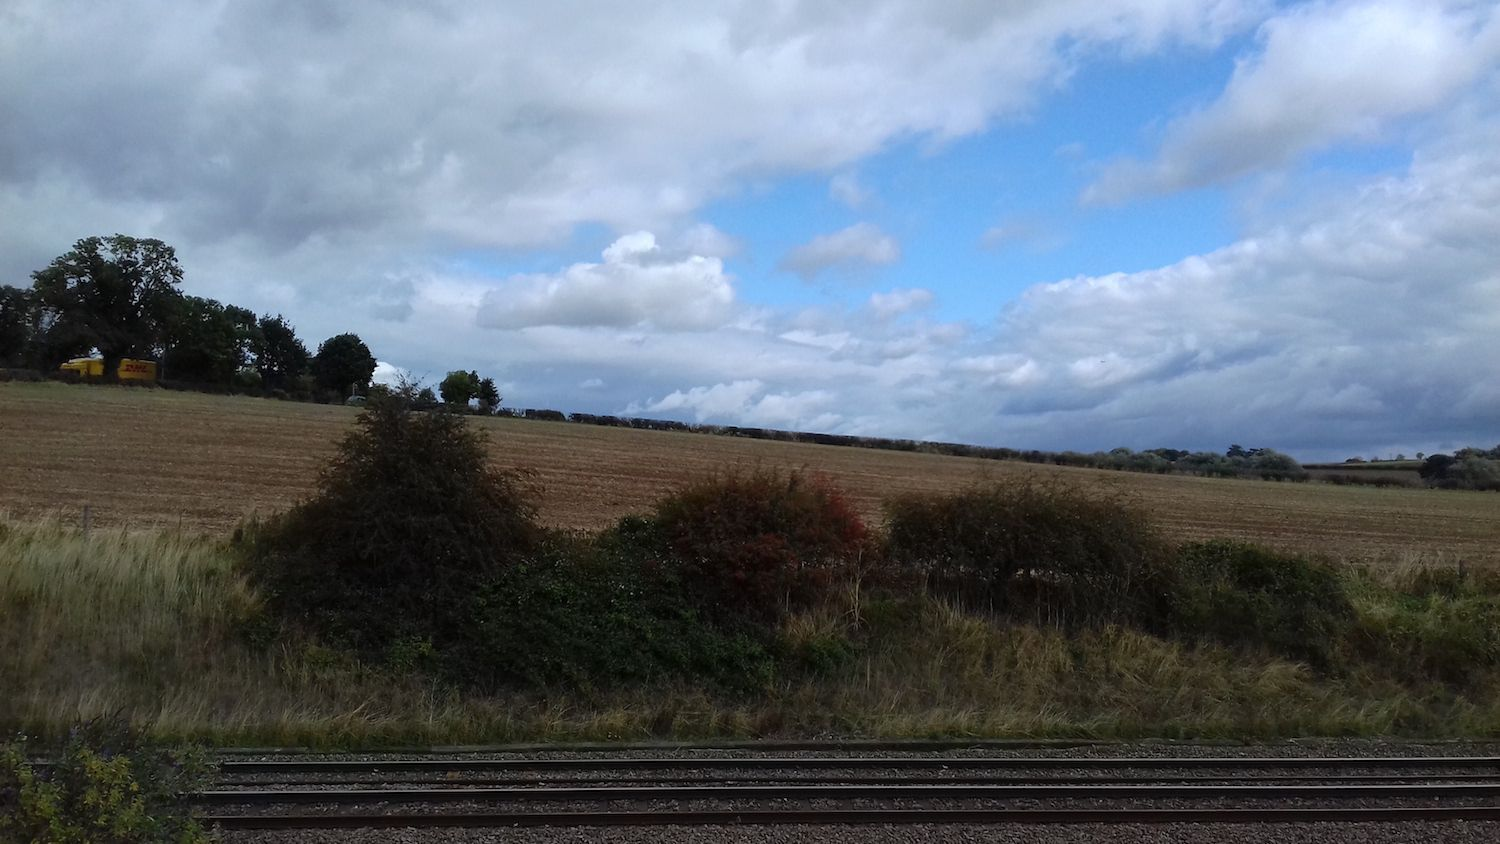 The view from The Sleeper room at Hathern Station